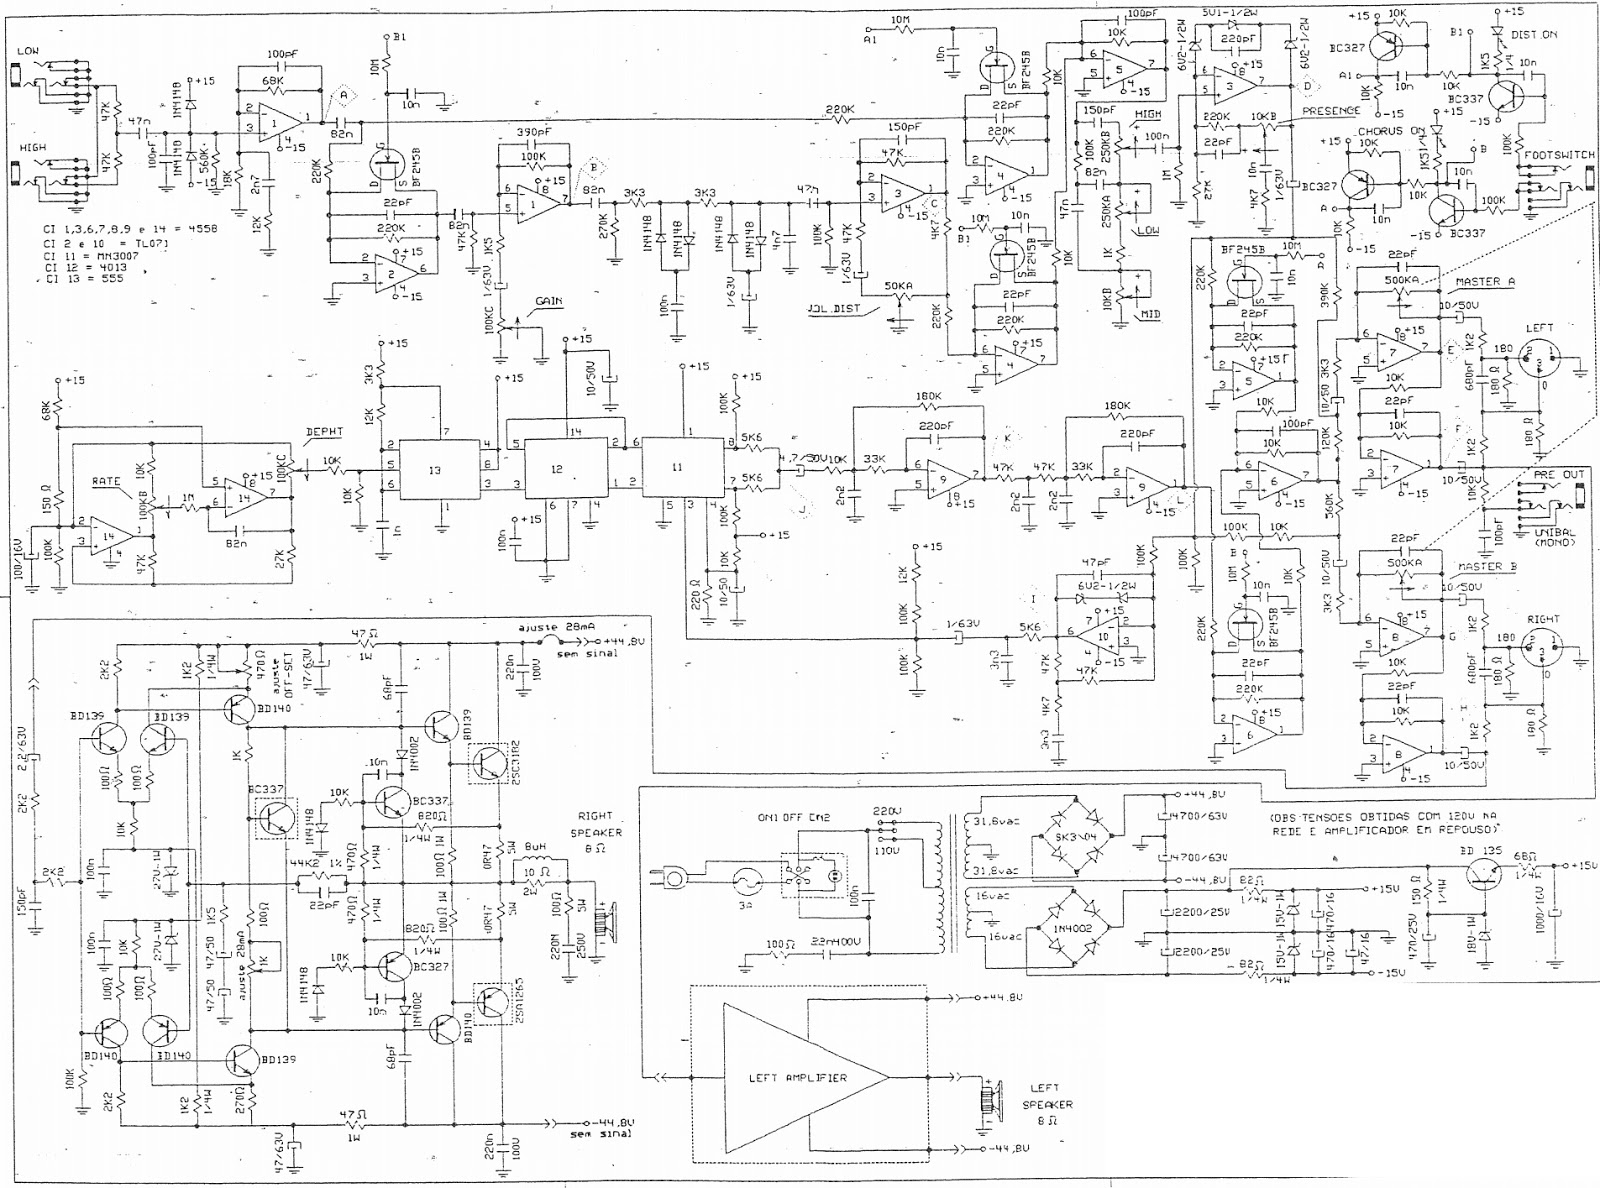 subwoofer wiring diagram likewise 2 ohm subwoofer wiring besides 2